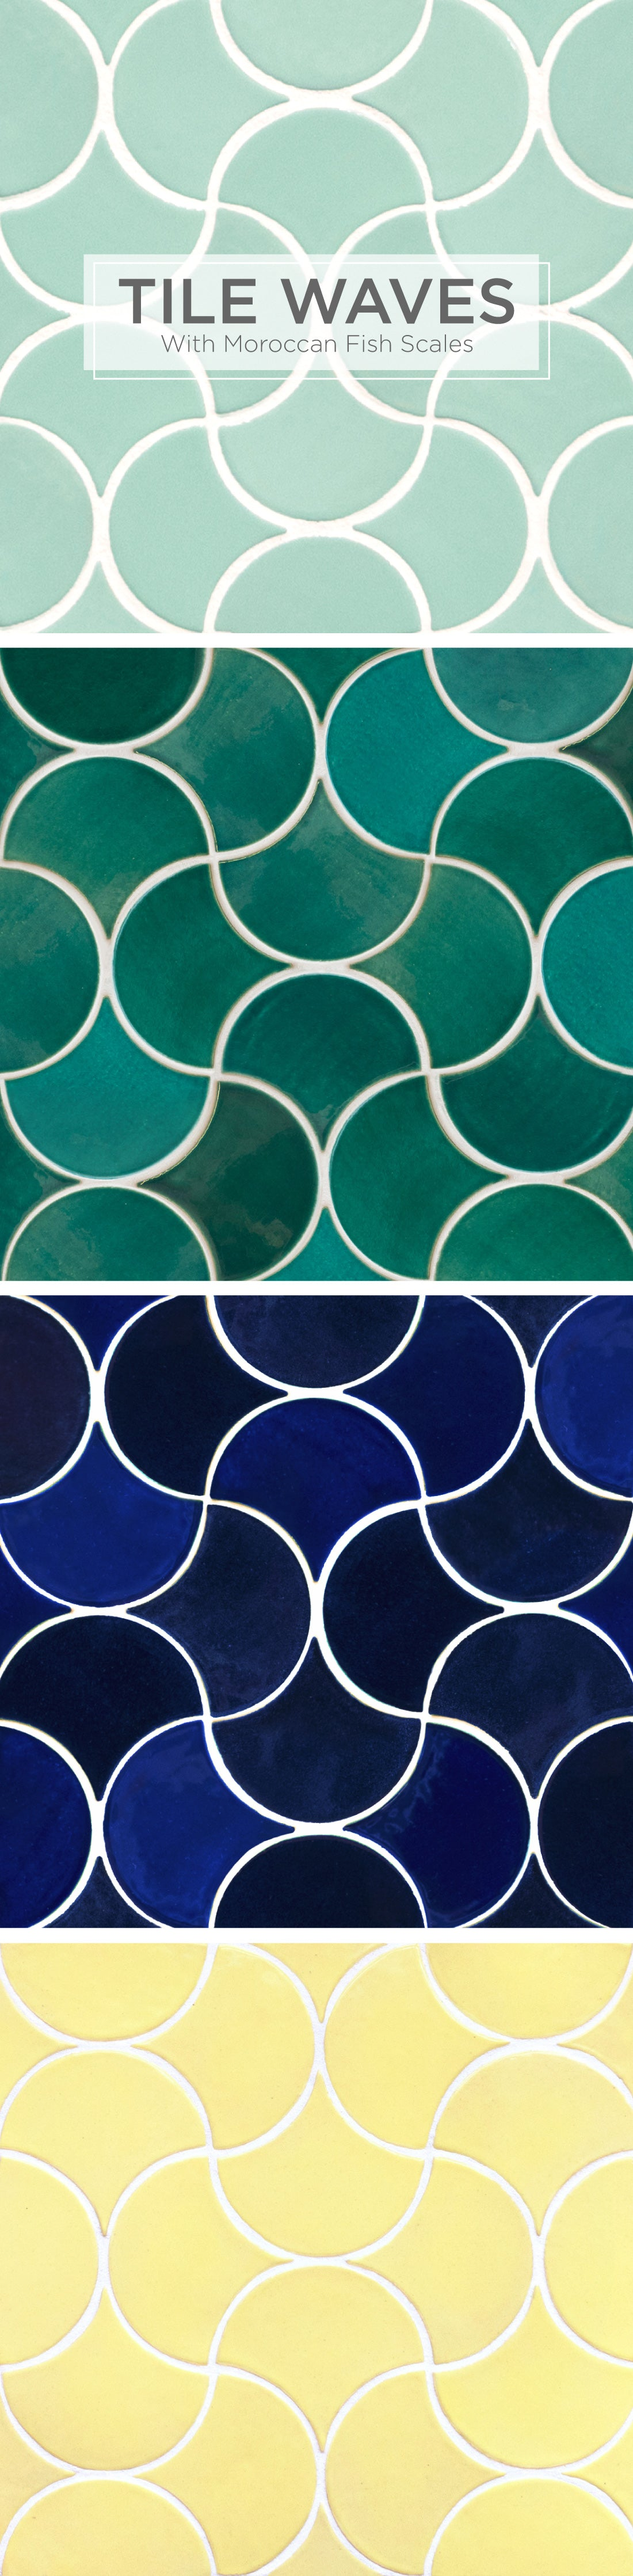 Tile-Waves-092716-1 Make Tile Waves with Moroccan Fish Scales All Residential Tile Inspiration